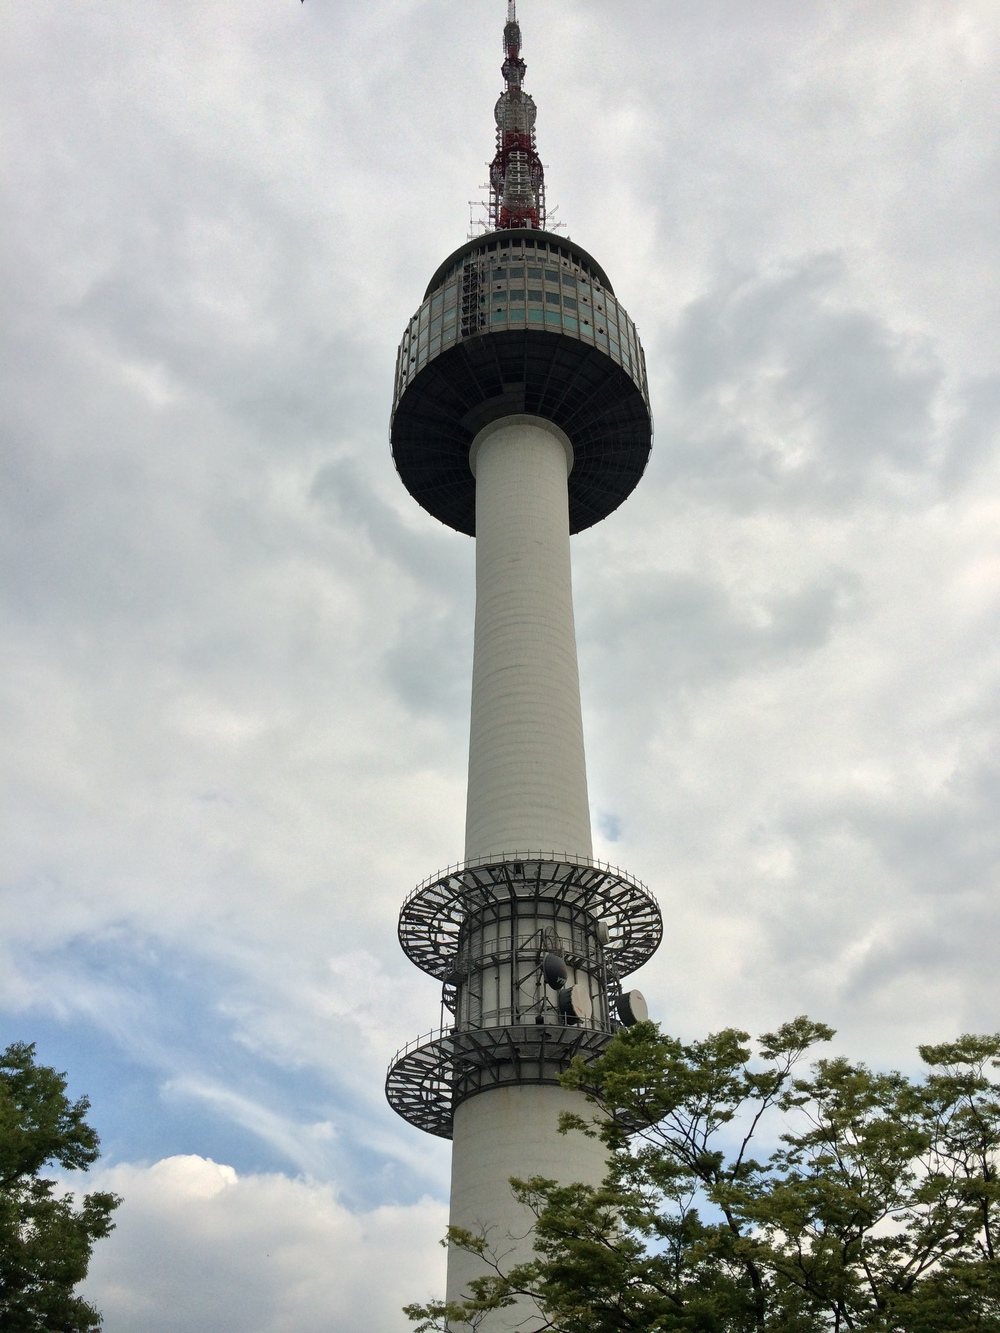 Seoul Tower! I went up to the very top to see the views .... and also had a pizza dinner :-)